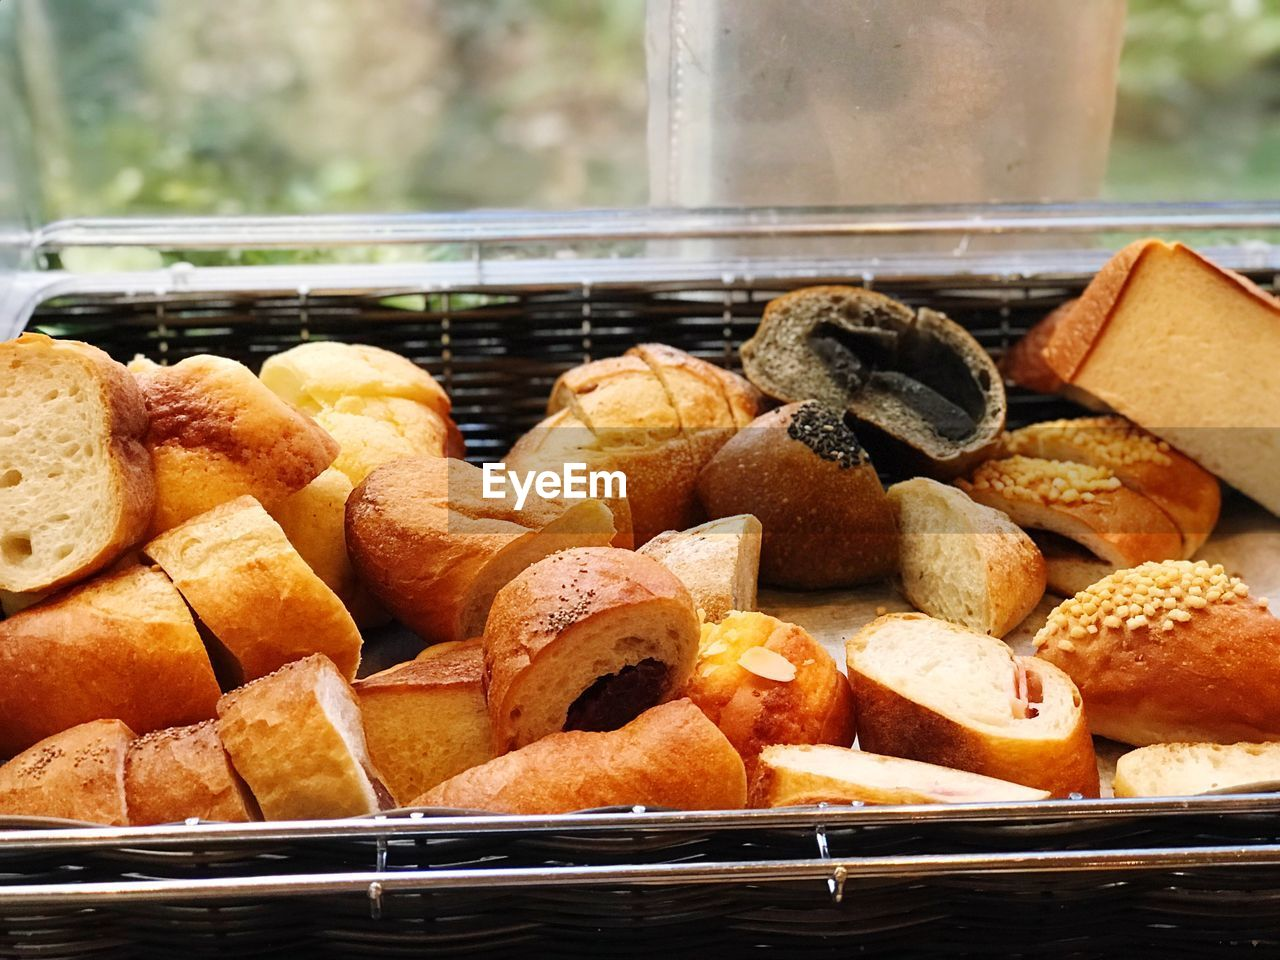 food, food and drink, freshness, ready-to-eat, close-up, still life, bread, no people, baked, container, focus on foreground, basket, indoors, day, brown, indulgence, healthy eating, sweet food, snack, bun, tray, french food, temptation